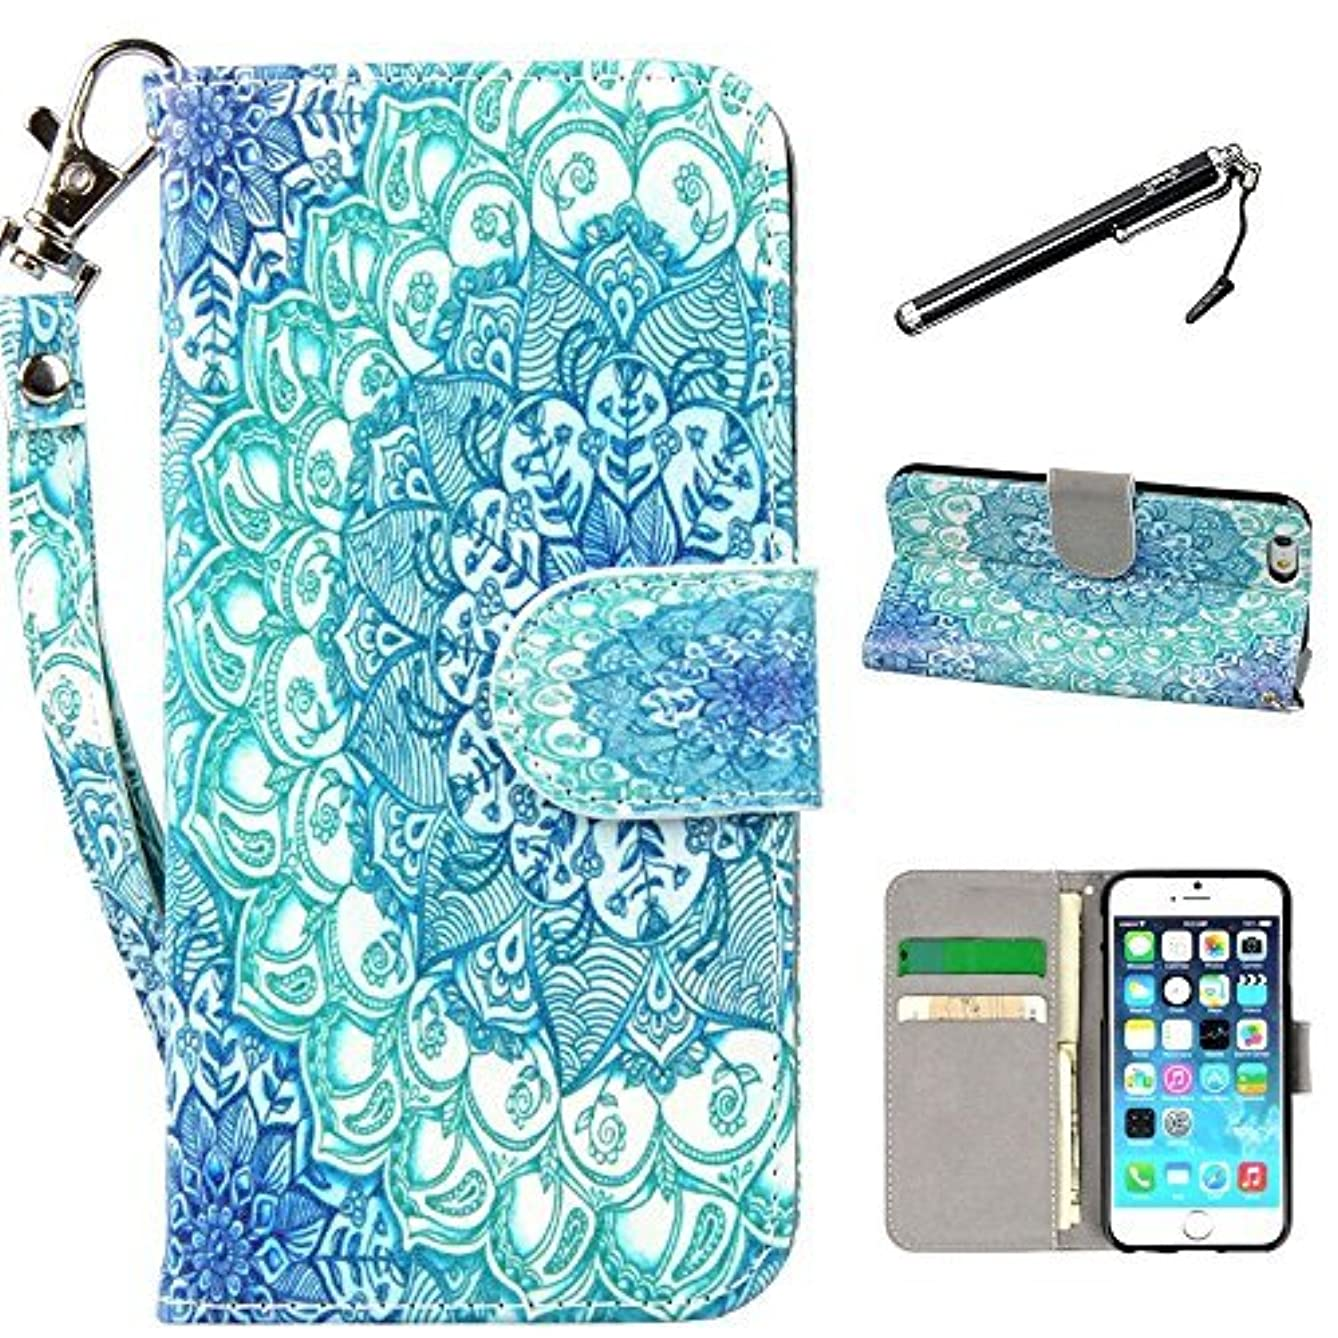 iPhone 6s Case, iPhone 6 Case, UrSpeedtekLive Premium PU Leather Funny Pattern Flip Wallet Case Cover with Card Slots & Stand for iPhone 6/6s 4.7 Inch - Mandala Floral